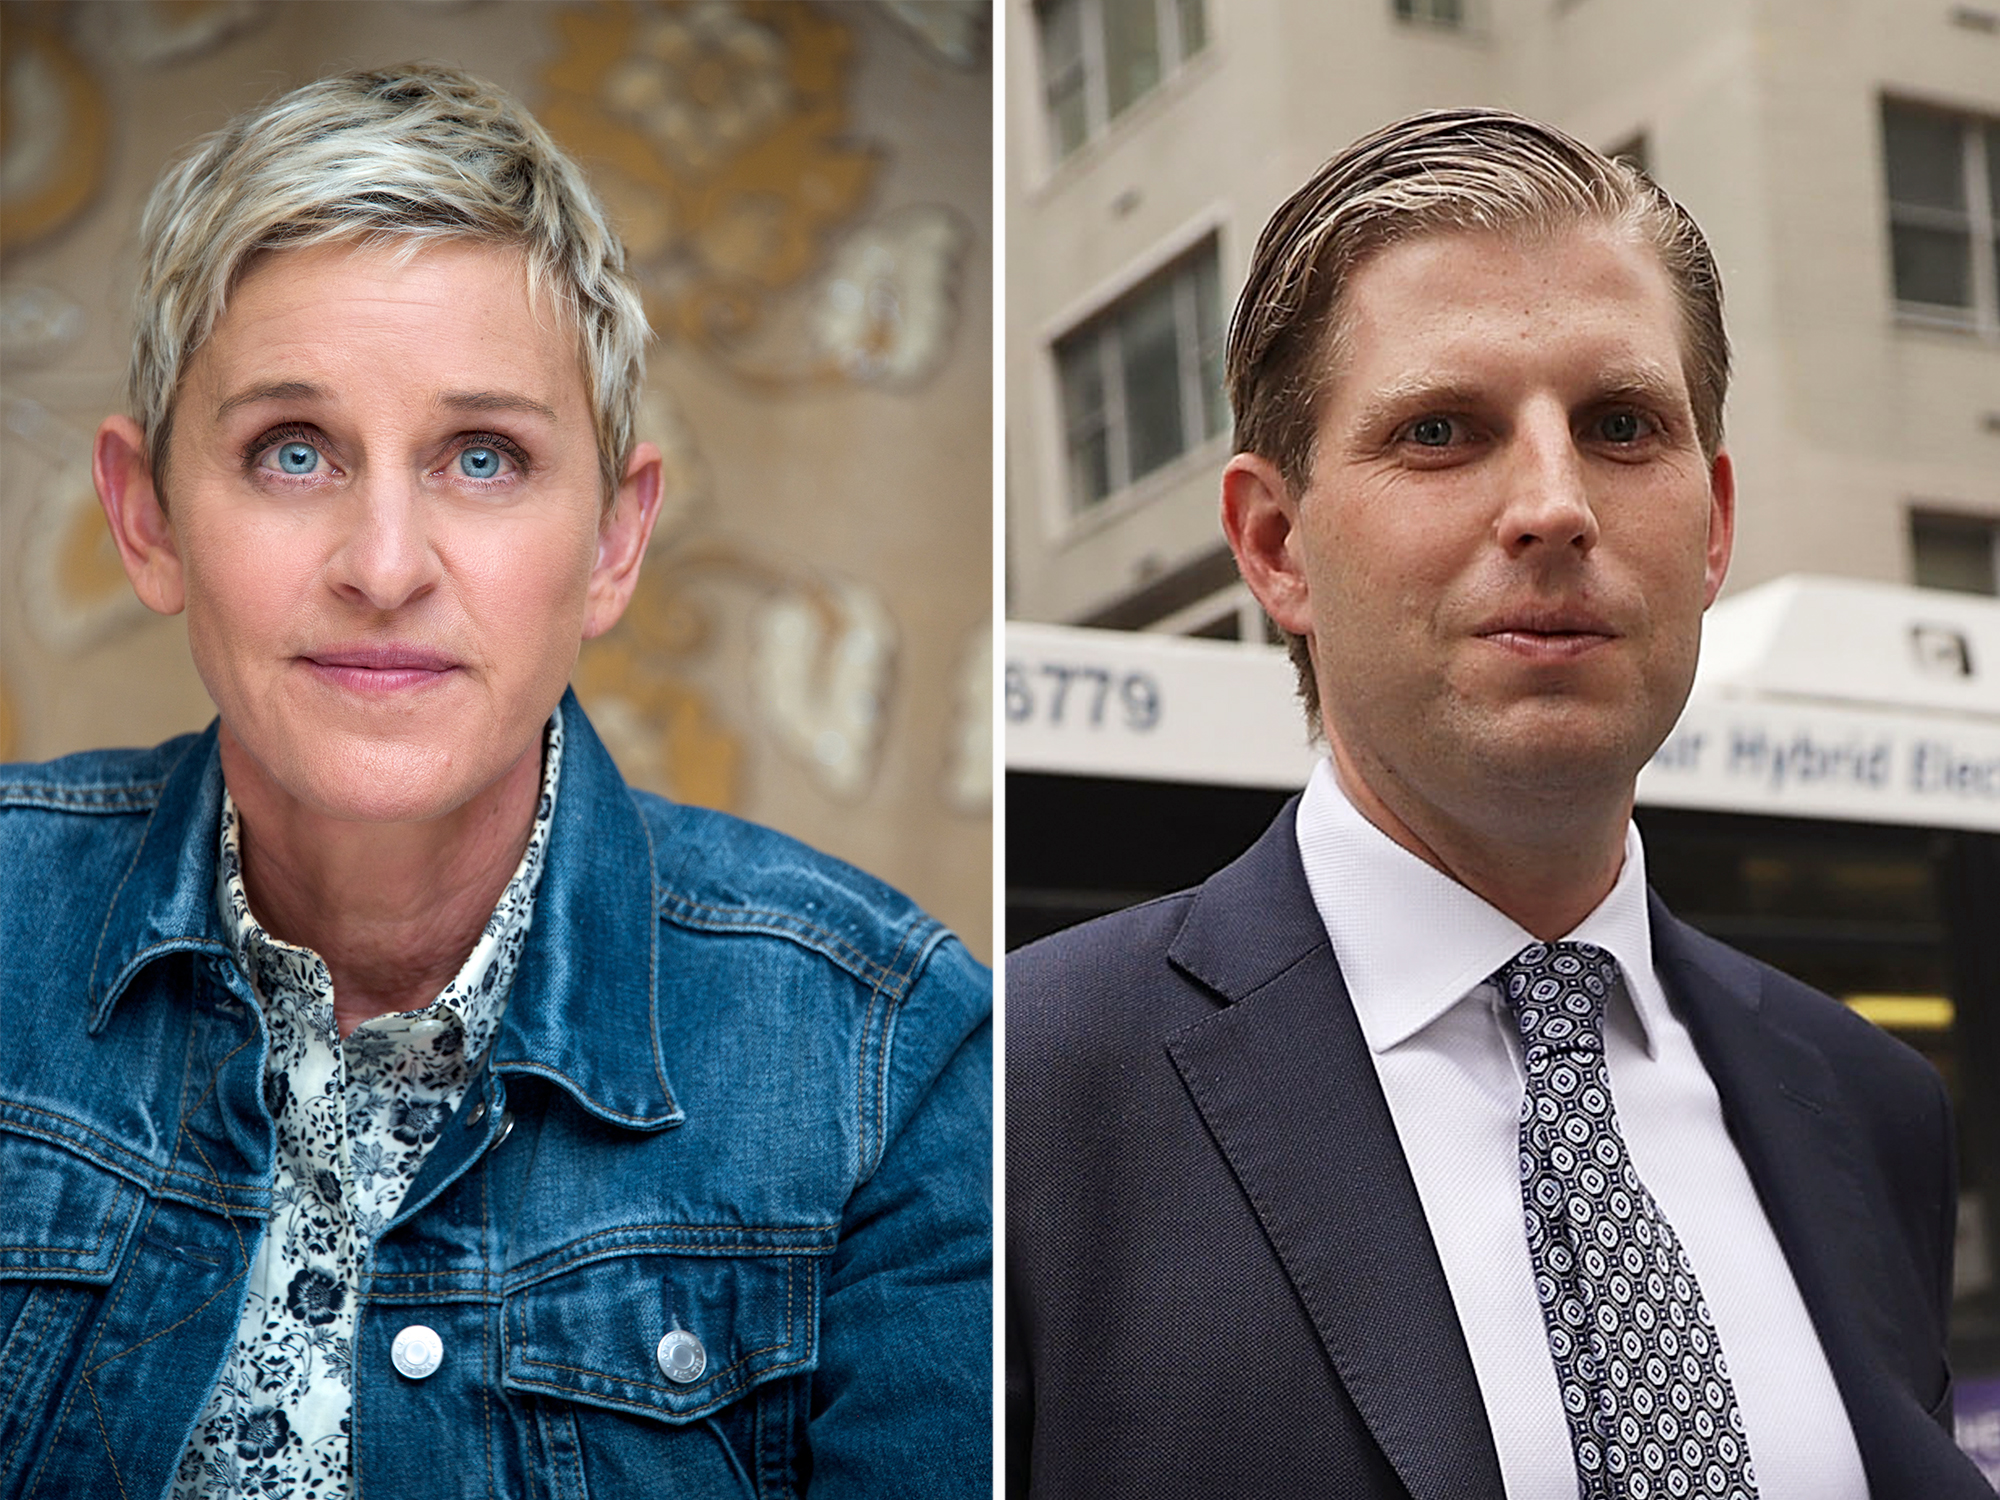 Ellen Degeneres and Eric Trump